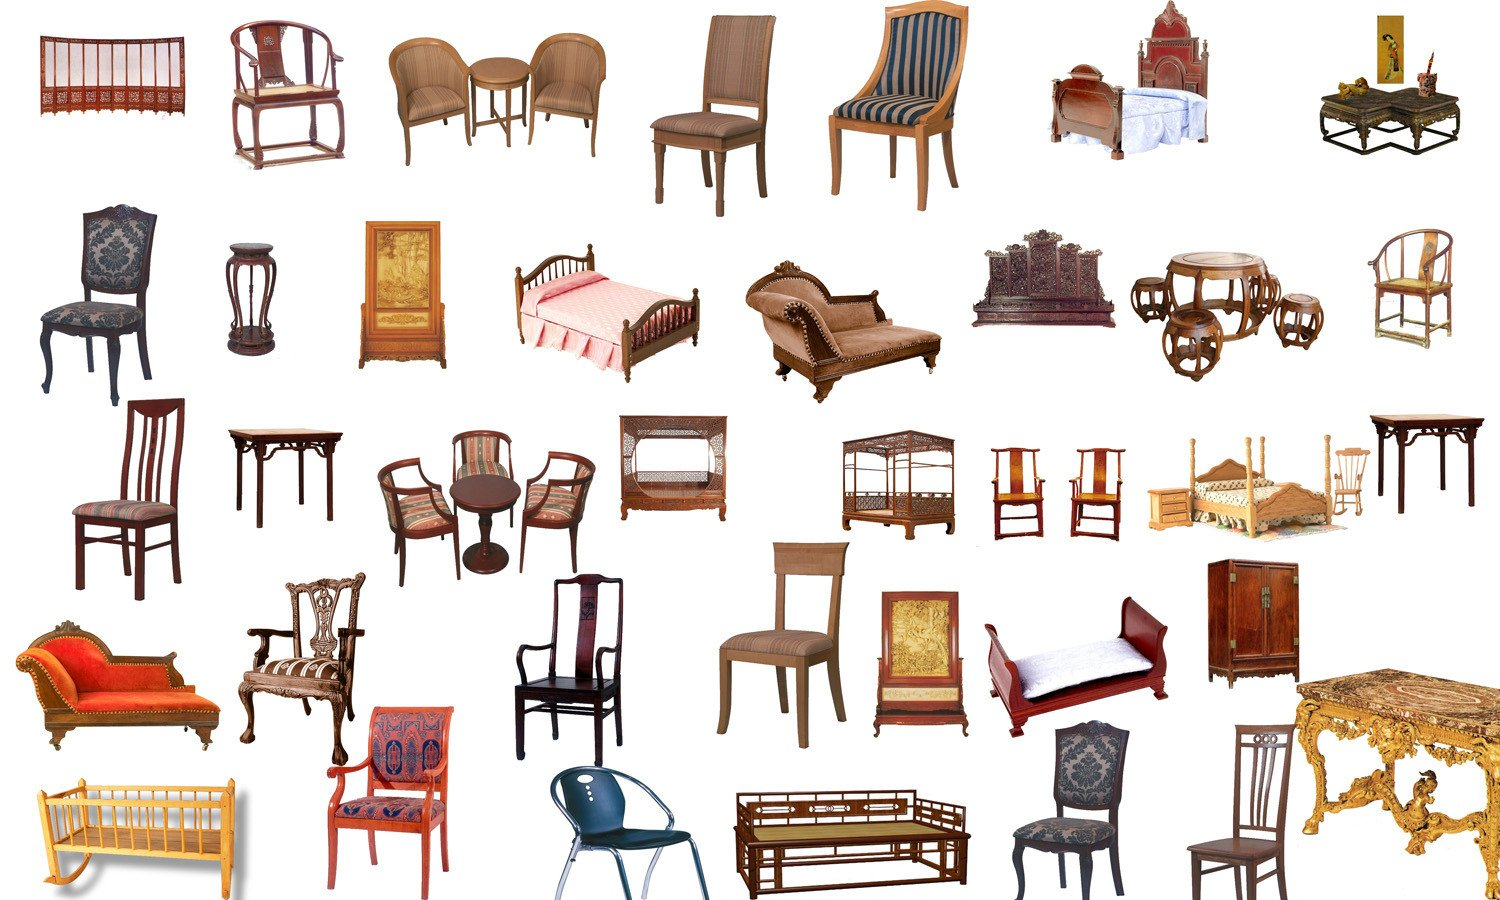 Furniture clipart used furniture. Photoshop psd chinese blocks